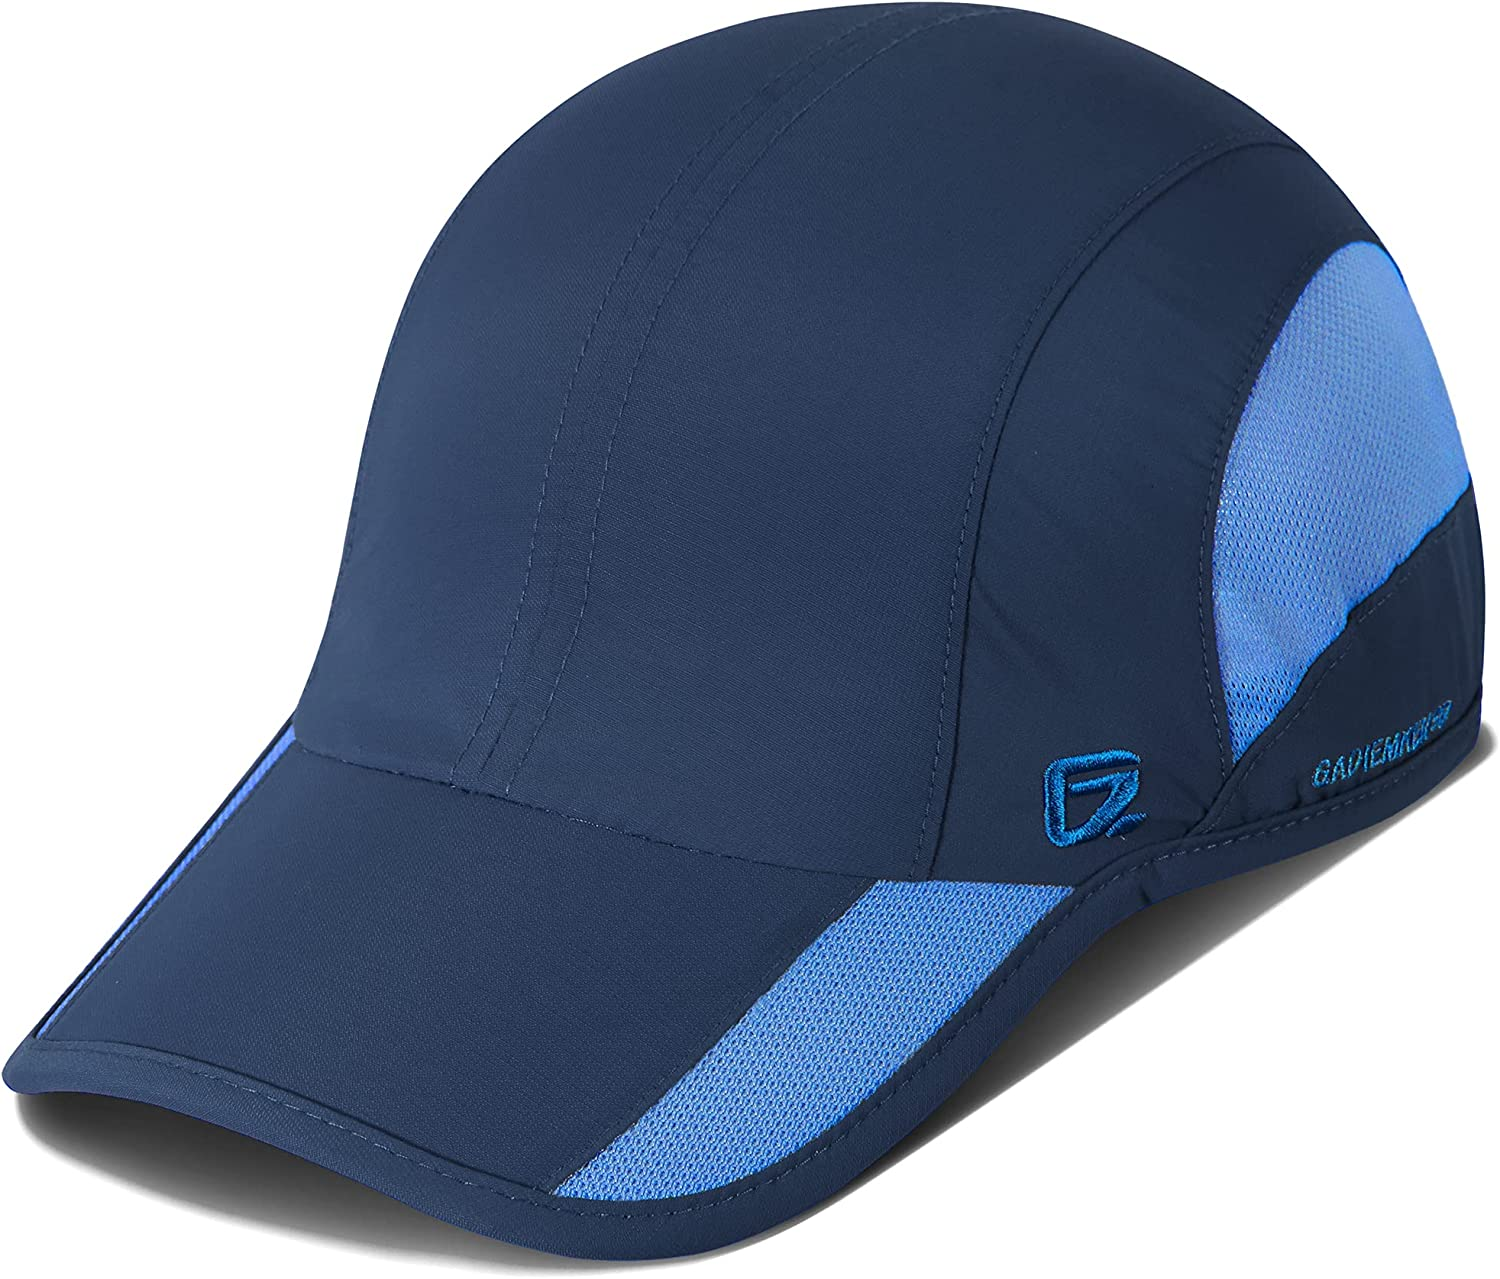 TITECOUGO Unstructured Quick Dry Hat Discount is also underway Sun Protective Outdoor Wholesale Runn